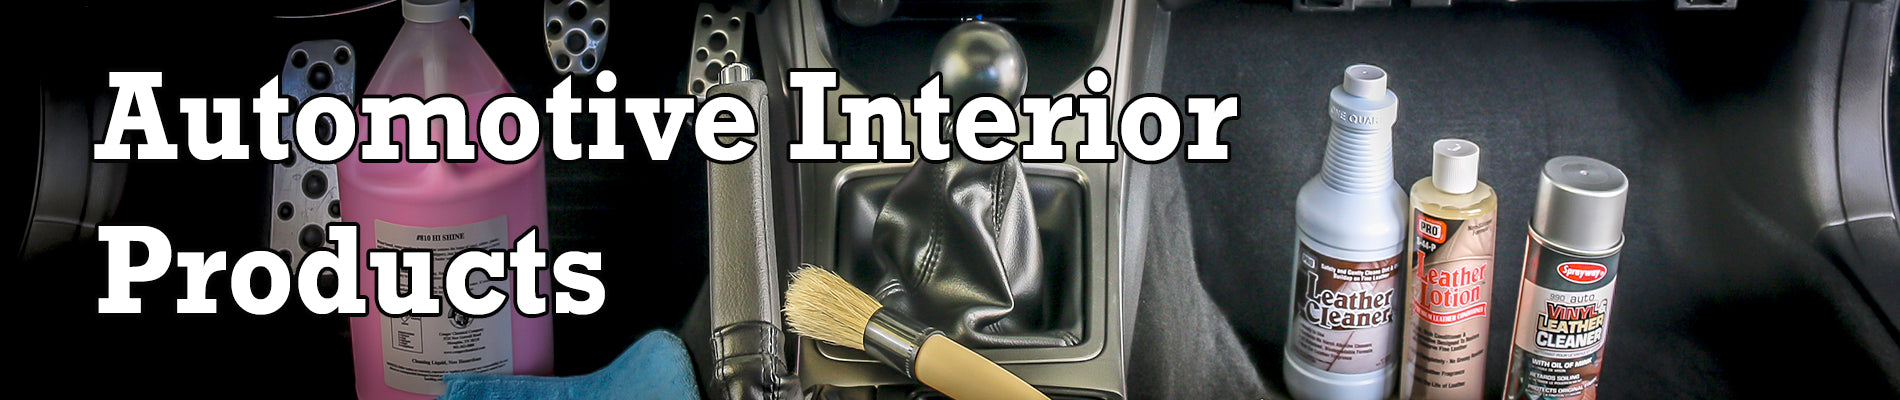 Automotive Interior Products